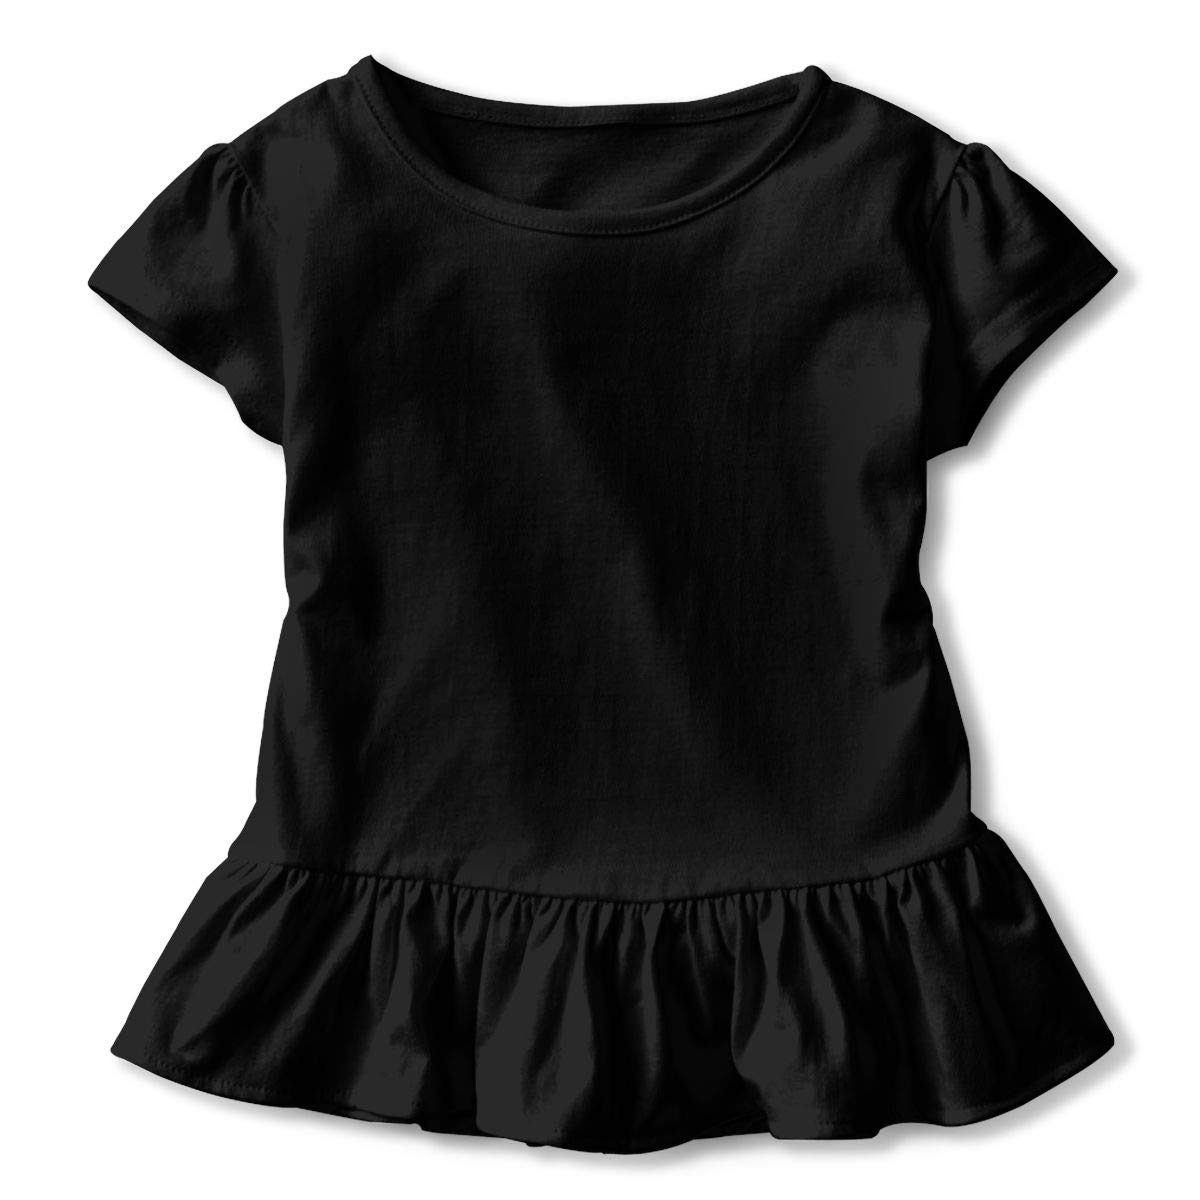 Dont Mess Mama Bear Cute Adorable Printed Patterns Basic Ruffle Tee Shirts with Short Sleeves and O-Neck for Daily Party School Outside Playing Black